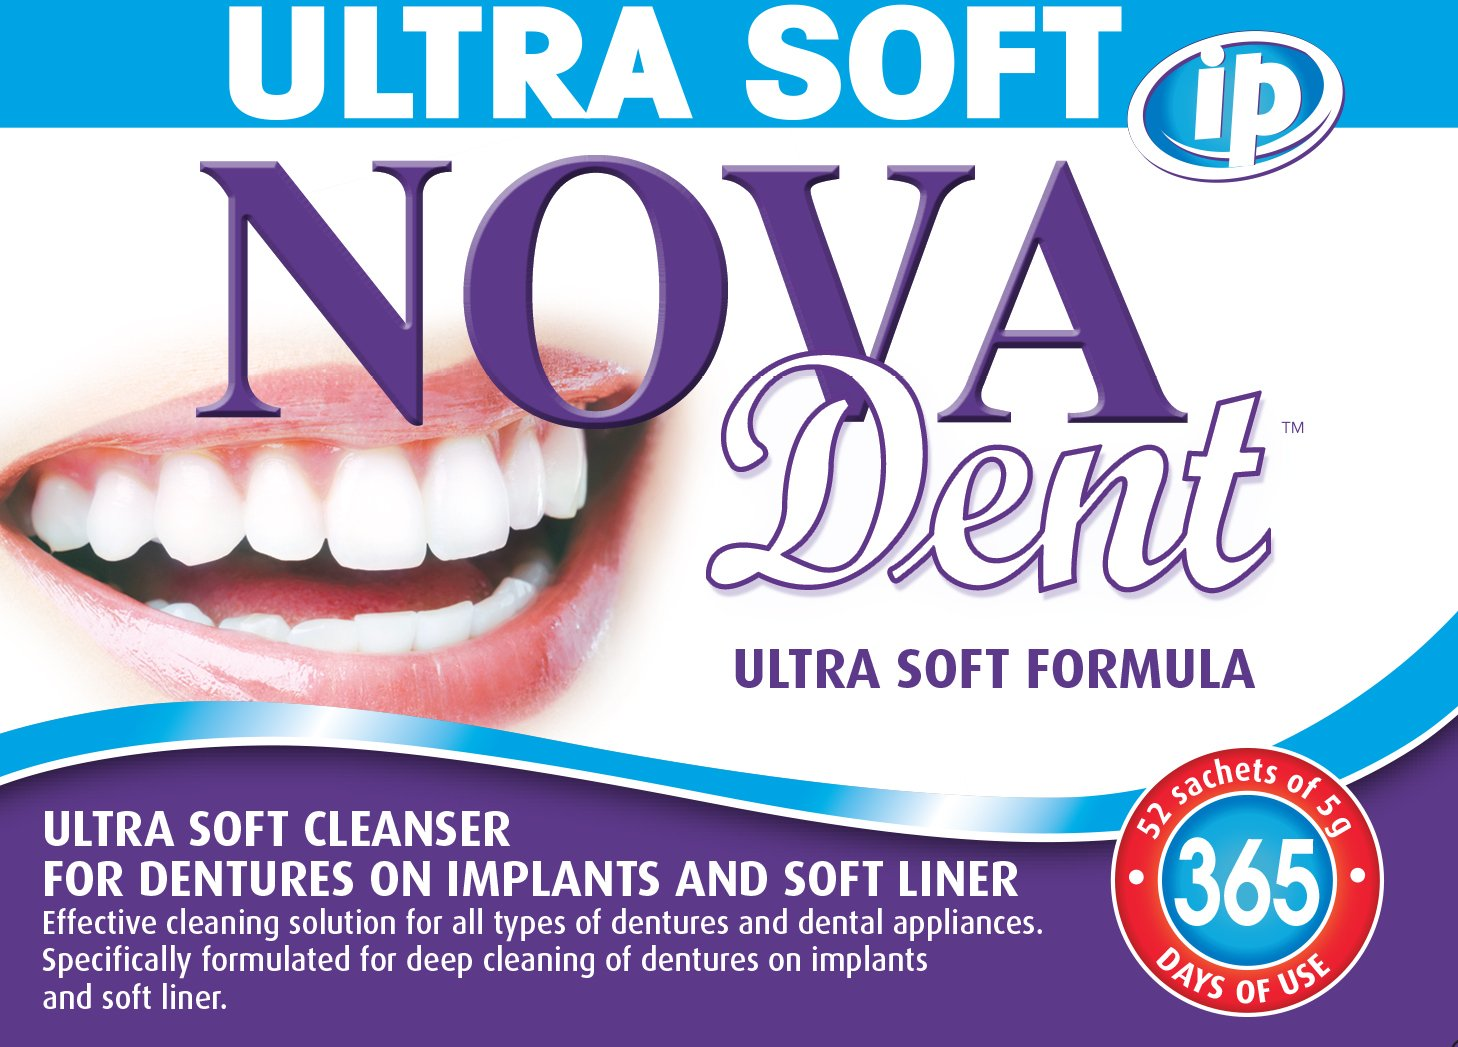 Novadent iP Ultra Soft + FREE soaking bath | Dentures and dental appliances cleanser | 1 year (52 sachets) Novalab Canada inc.